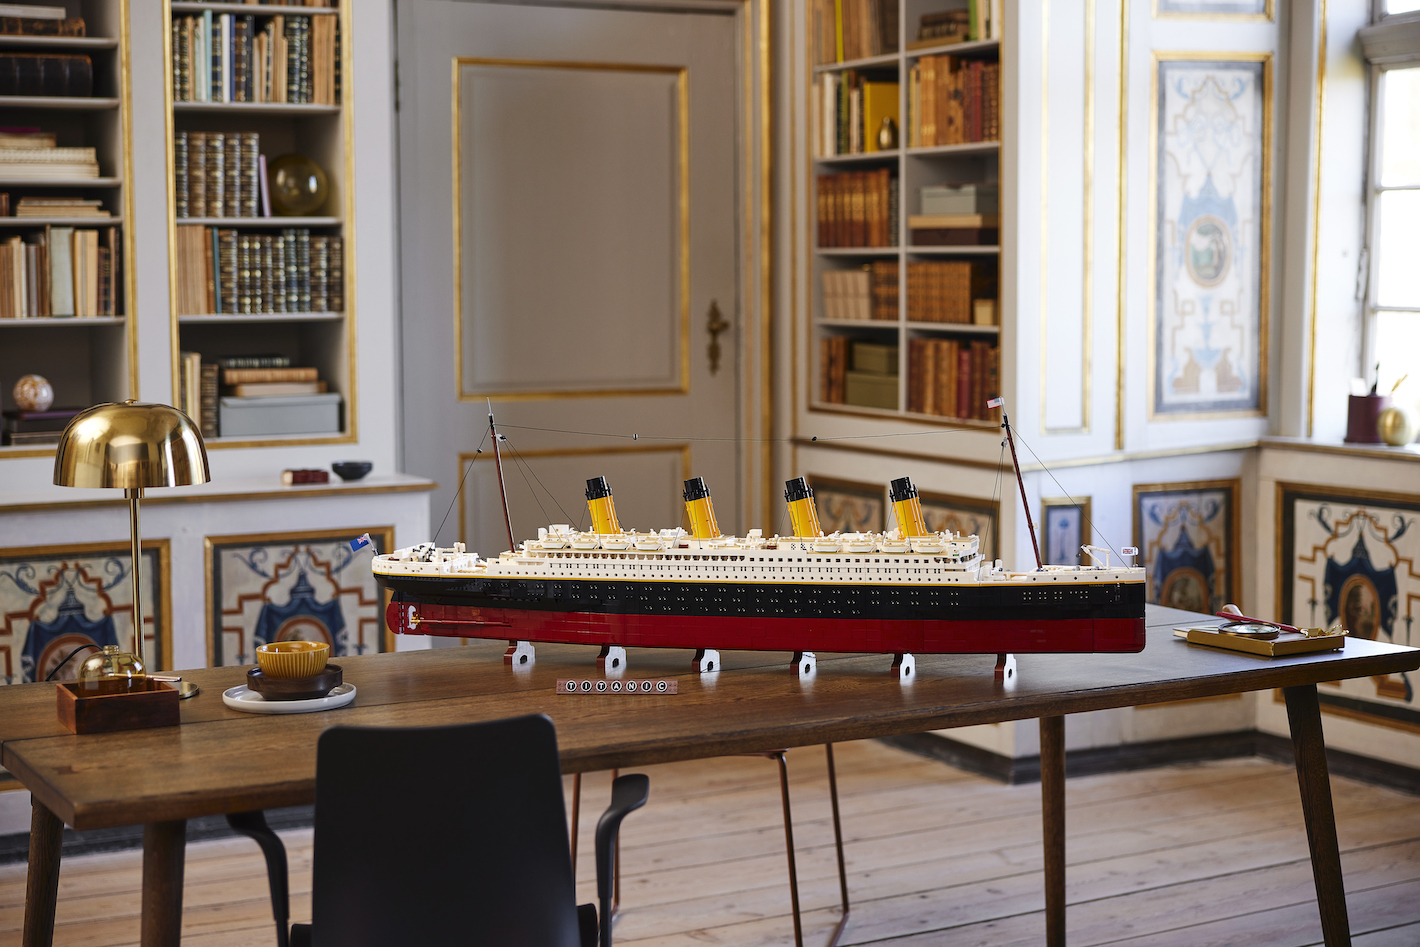 LEGO unveils the grandest ship in history - RMS Titanic